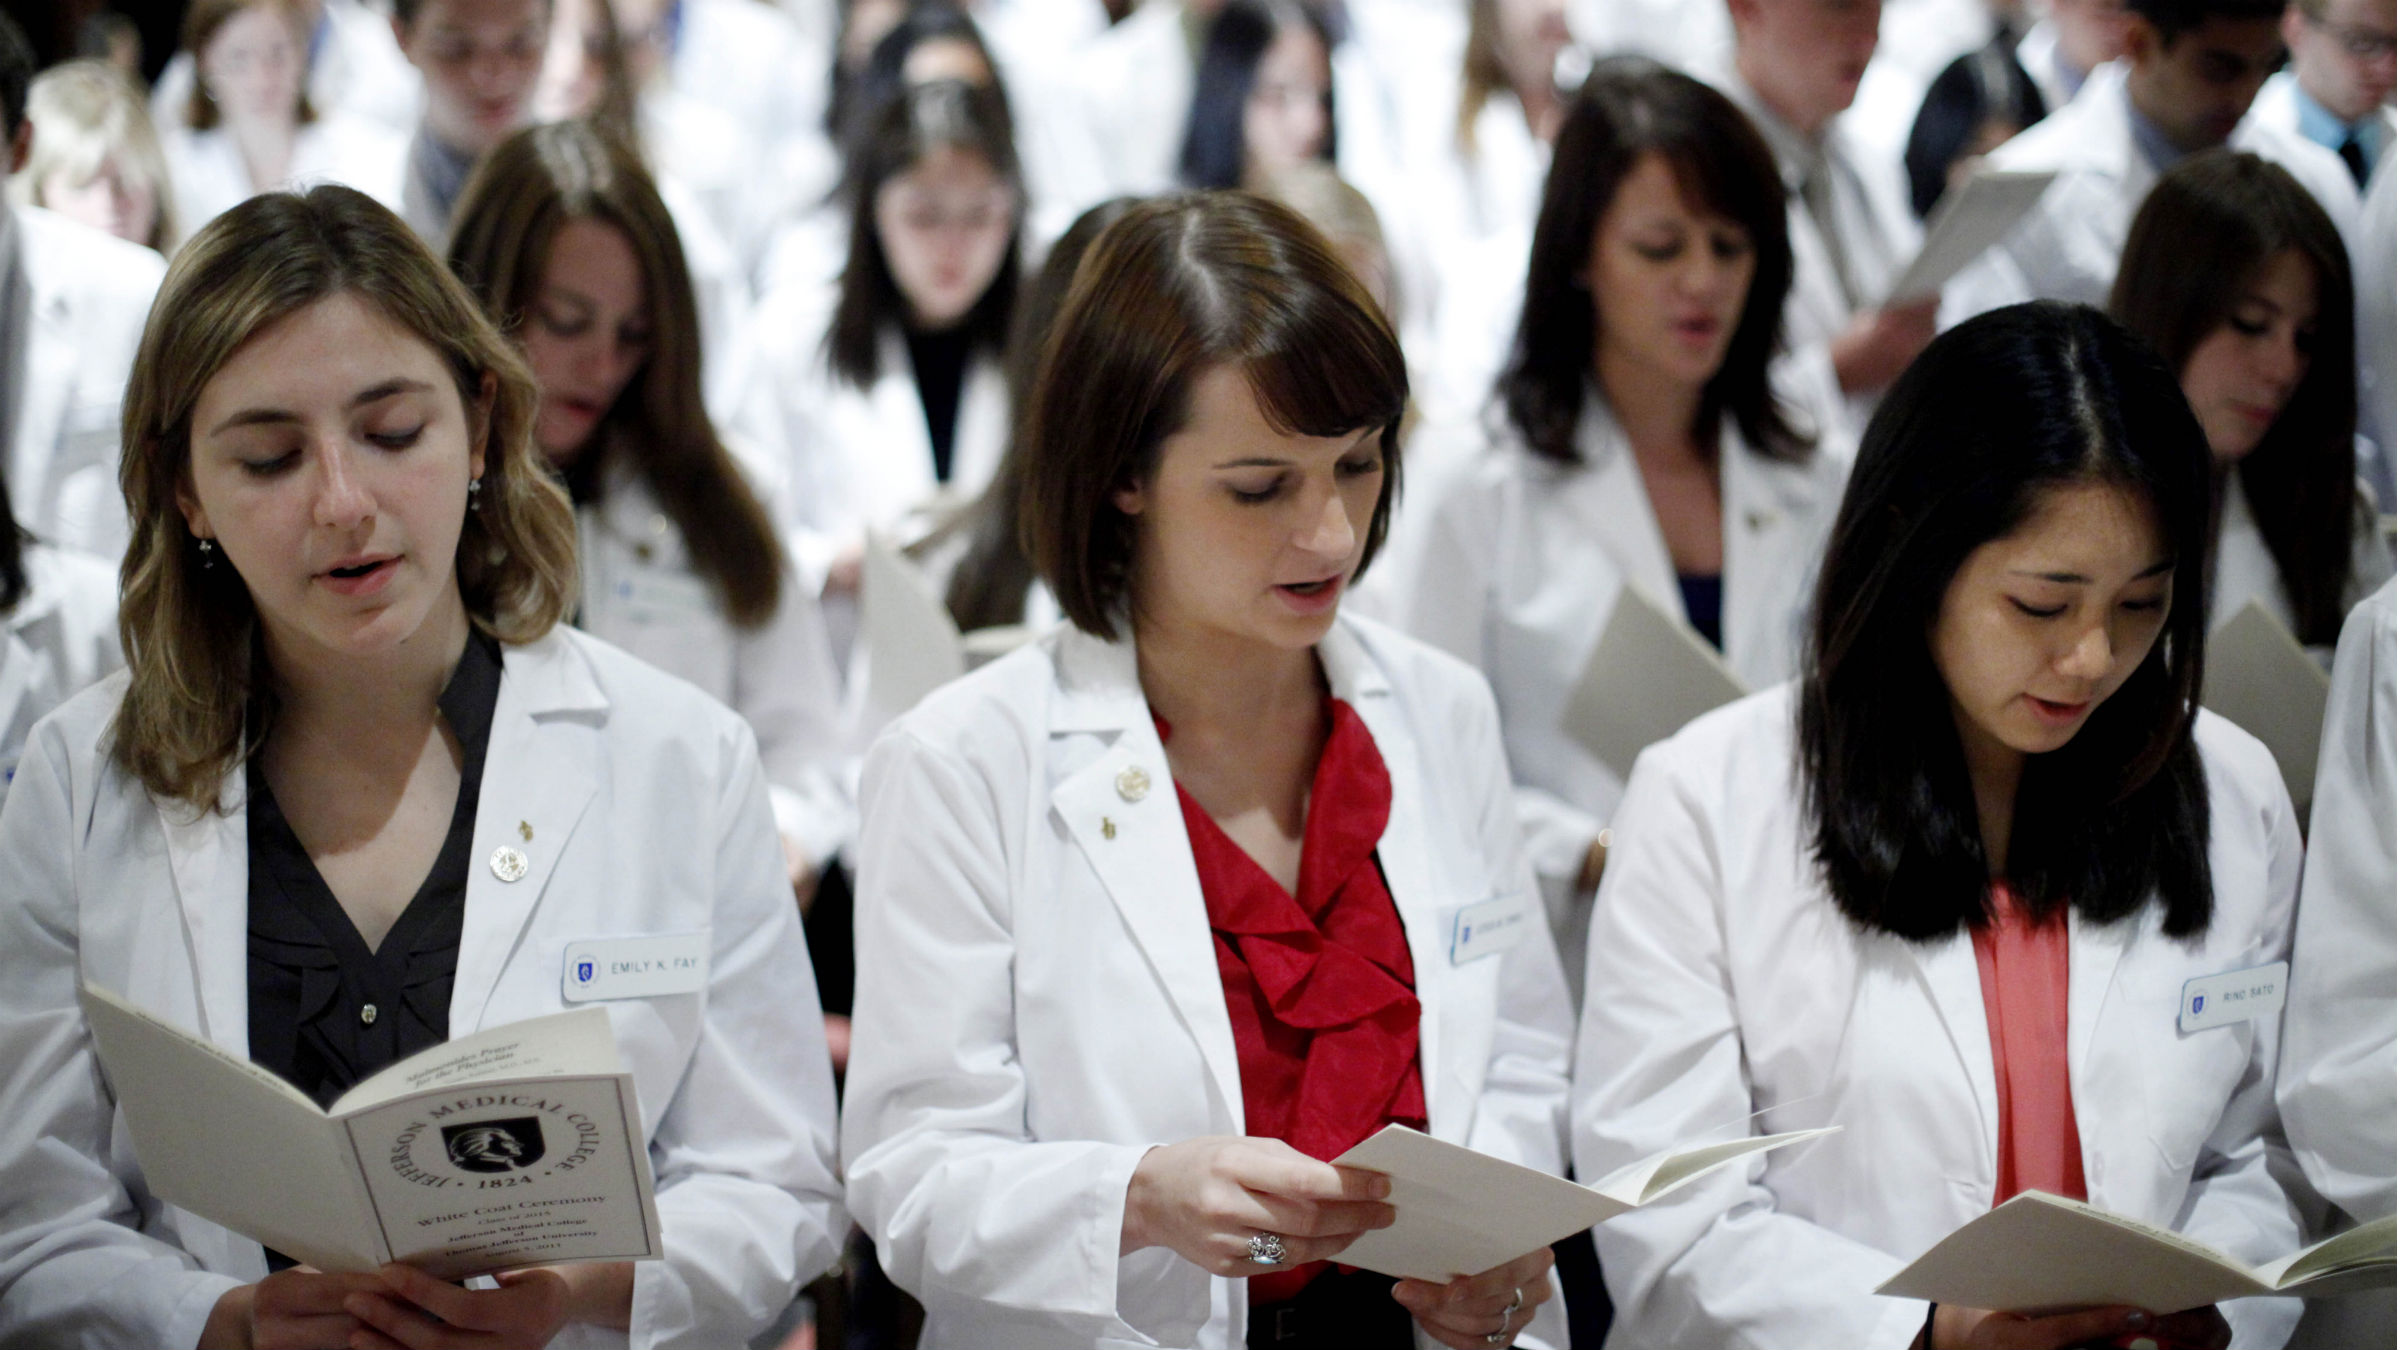 Thomas Jefferson University's Jefferson Medical College first-year students from left, Emily K. Fay, Jessica M. Torres, and Rino Sato take the Hippocratic Oath during the annual White Coat Ceremony, Friday, Aug. 5, 2011, in Philadelphia. The ceremony symbolizes the clinical beginning of the students' medical educations.